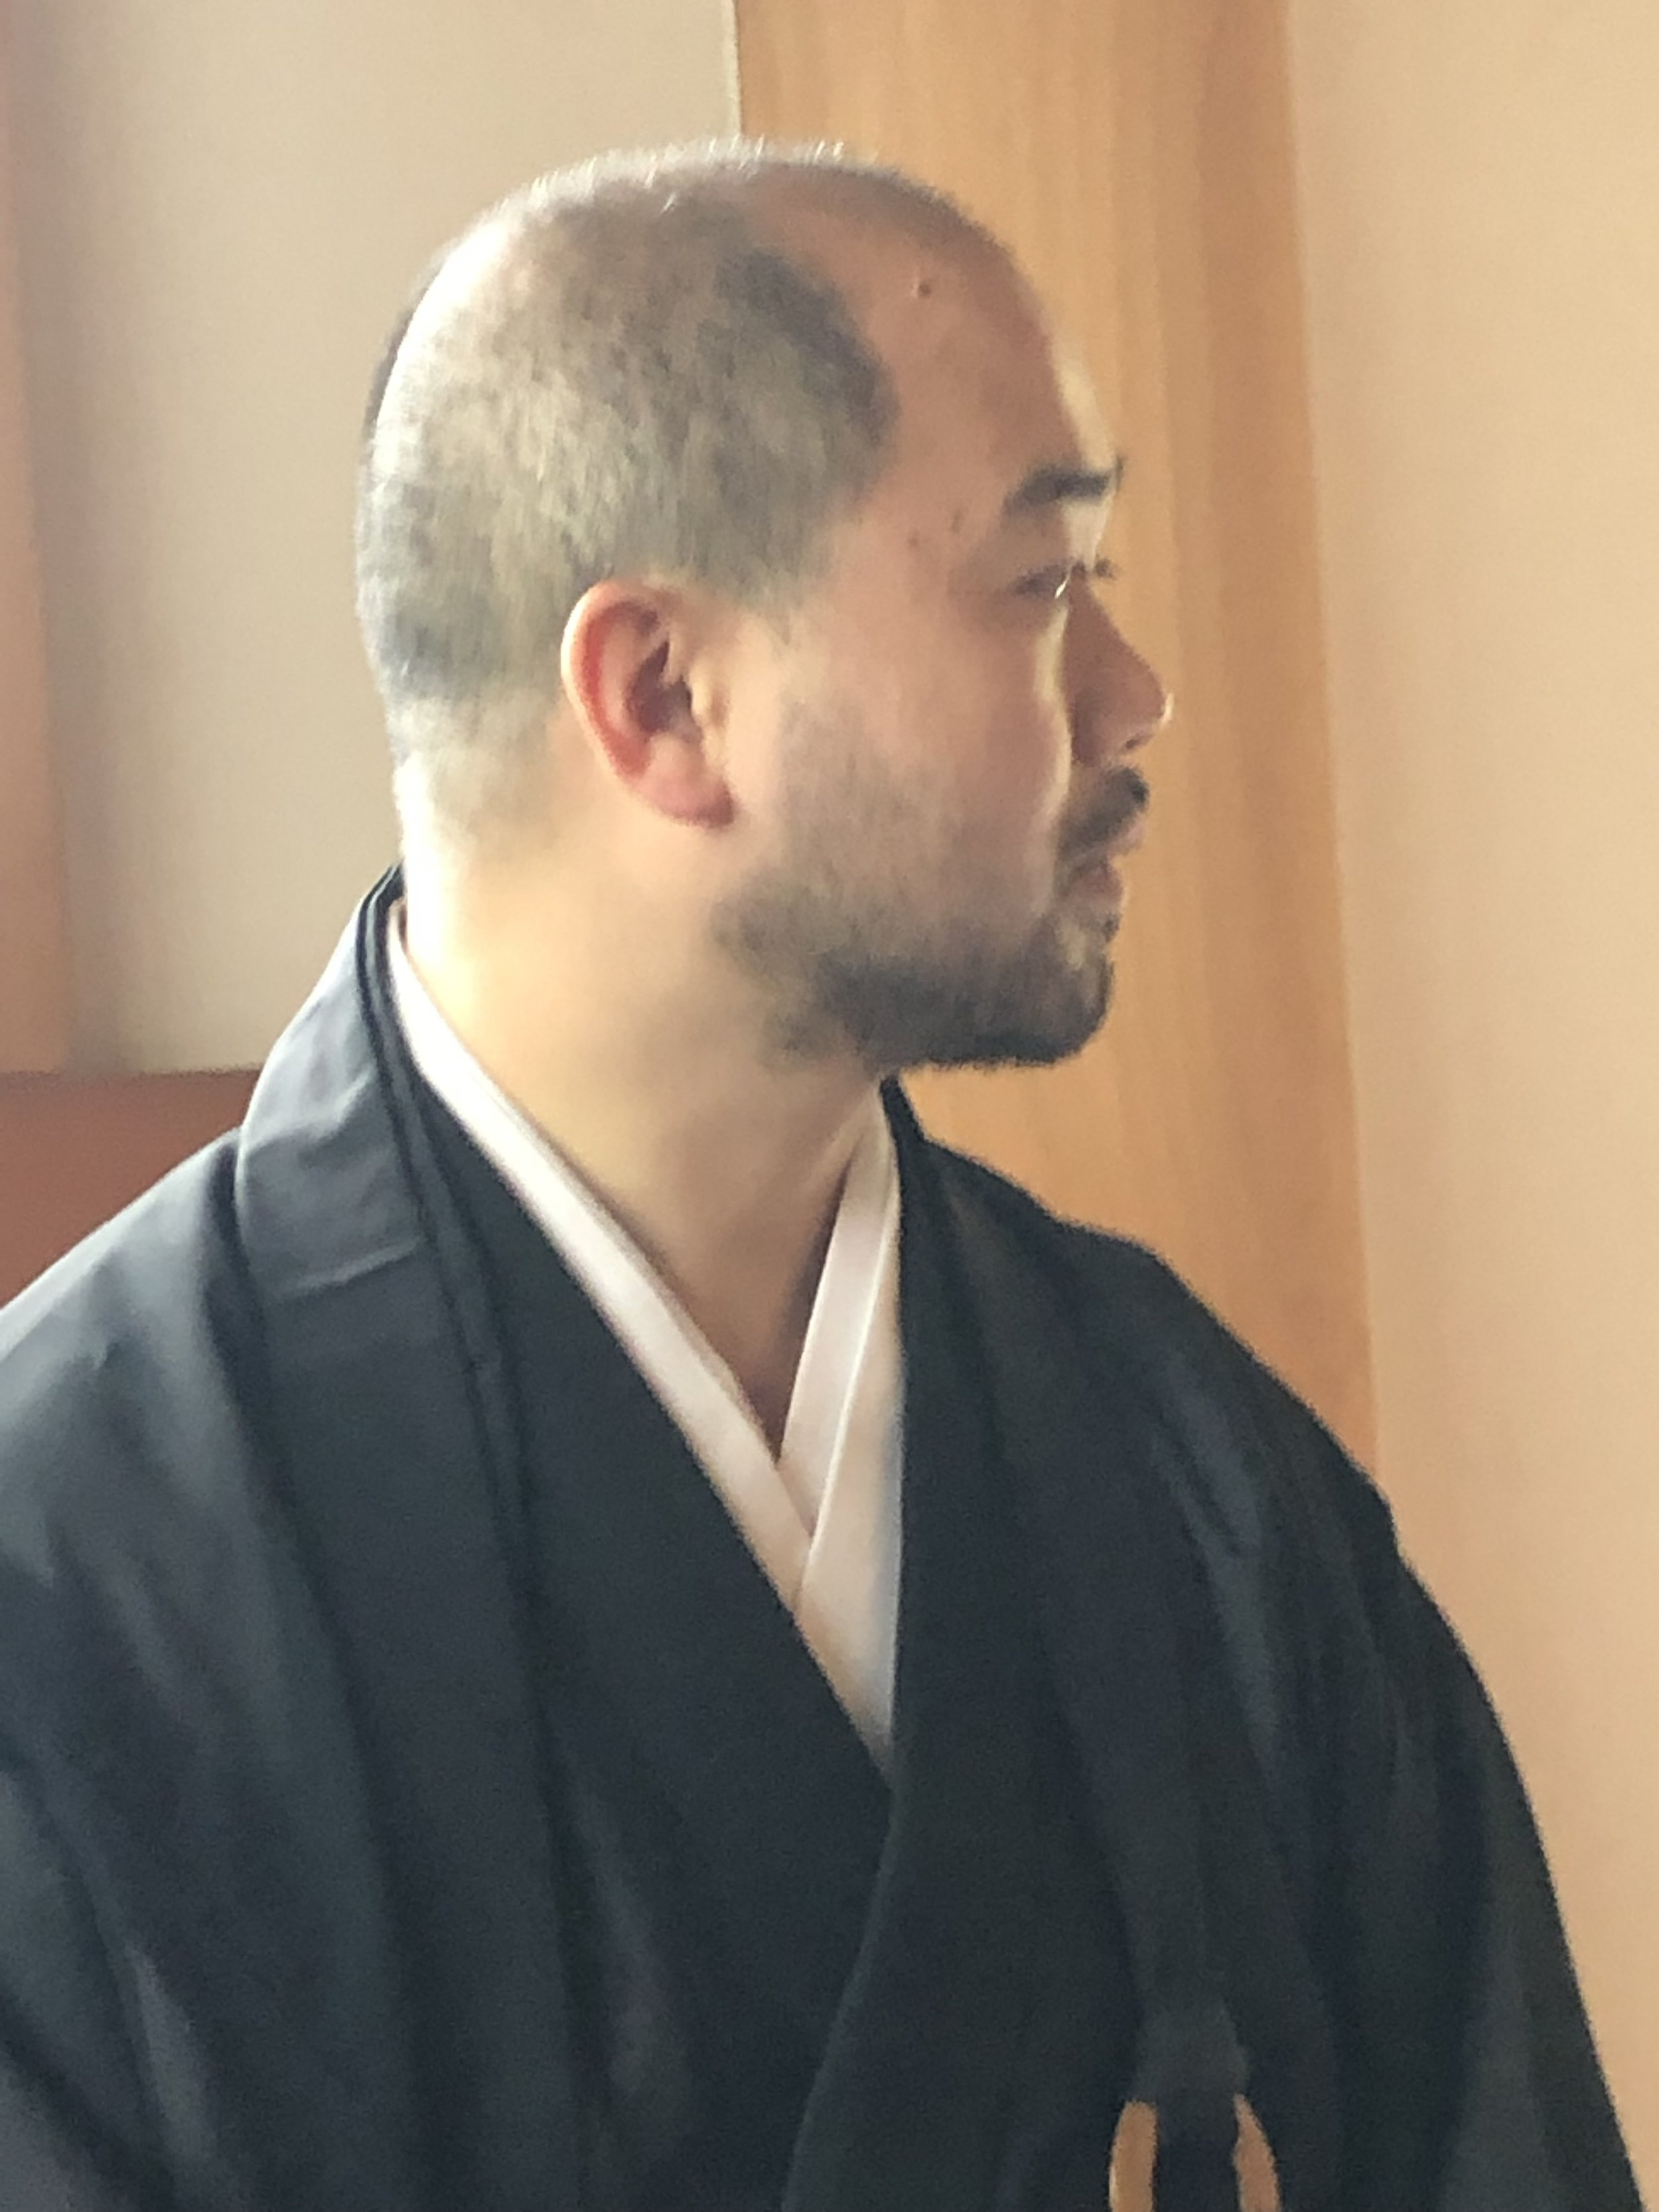 Our monk friend (Kyoto)